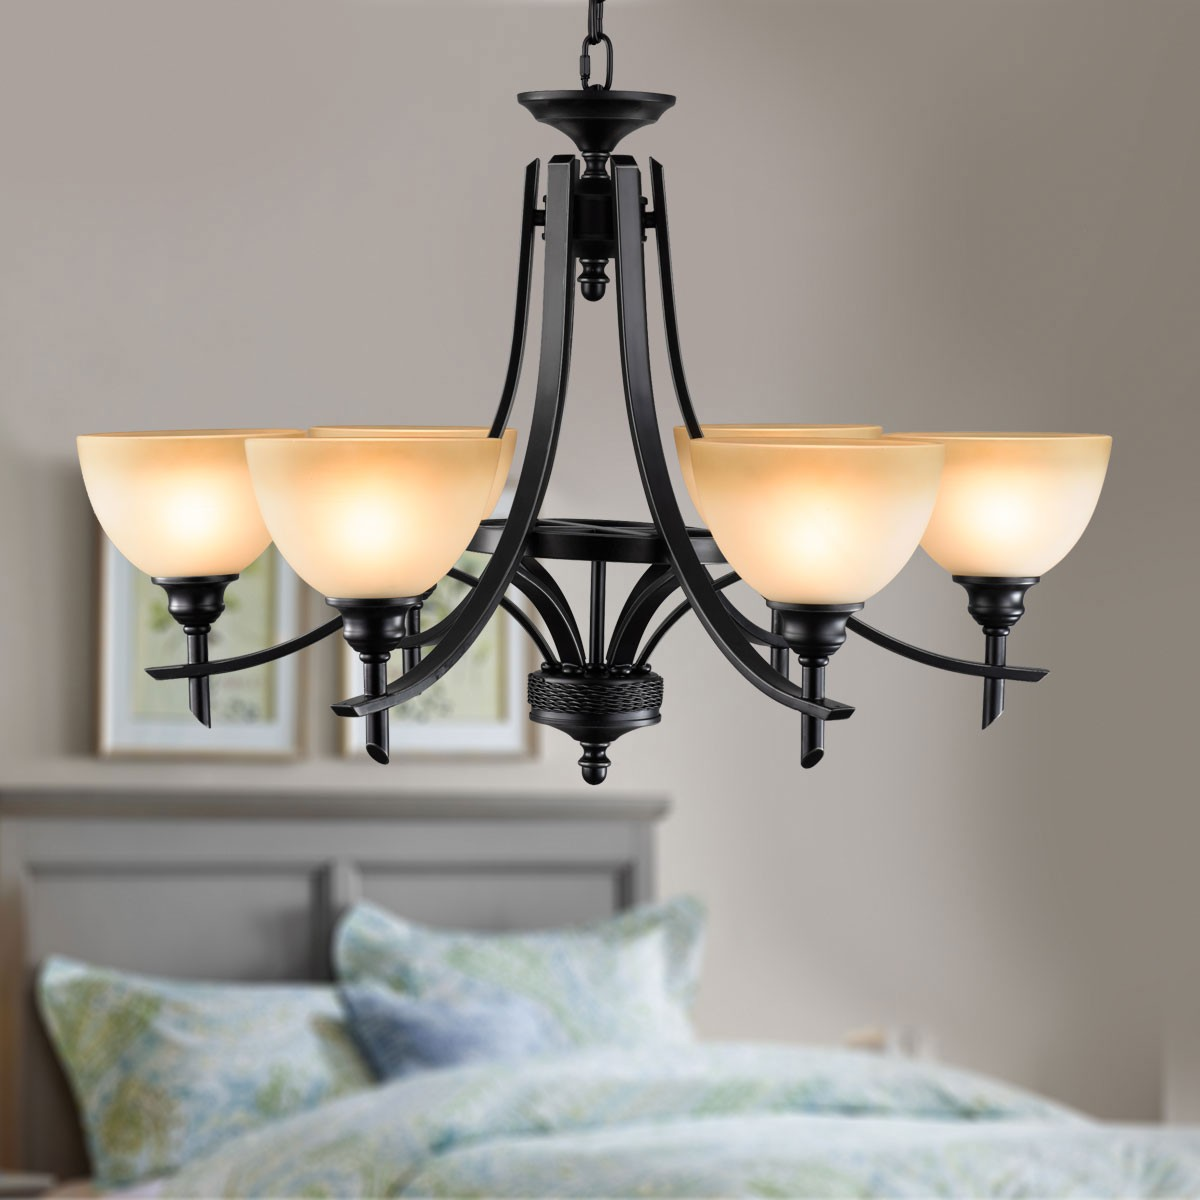 6 light black wrought iron chandelier with glass shades dk 8034 6